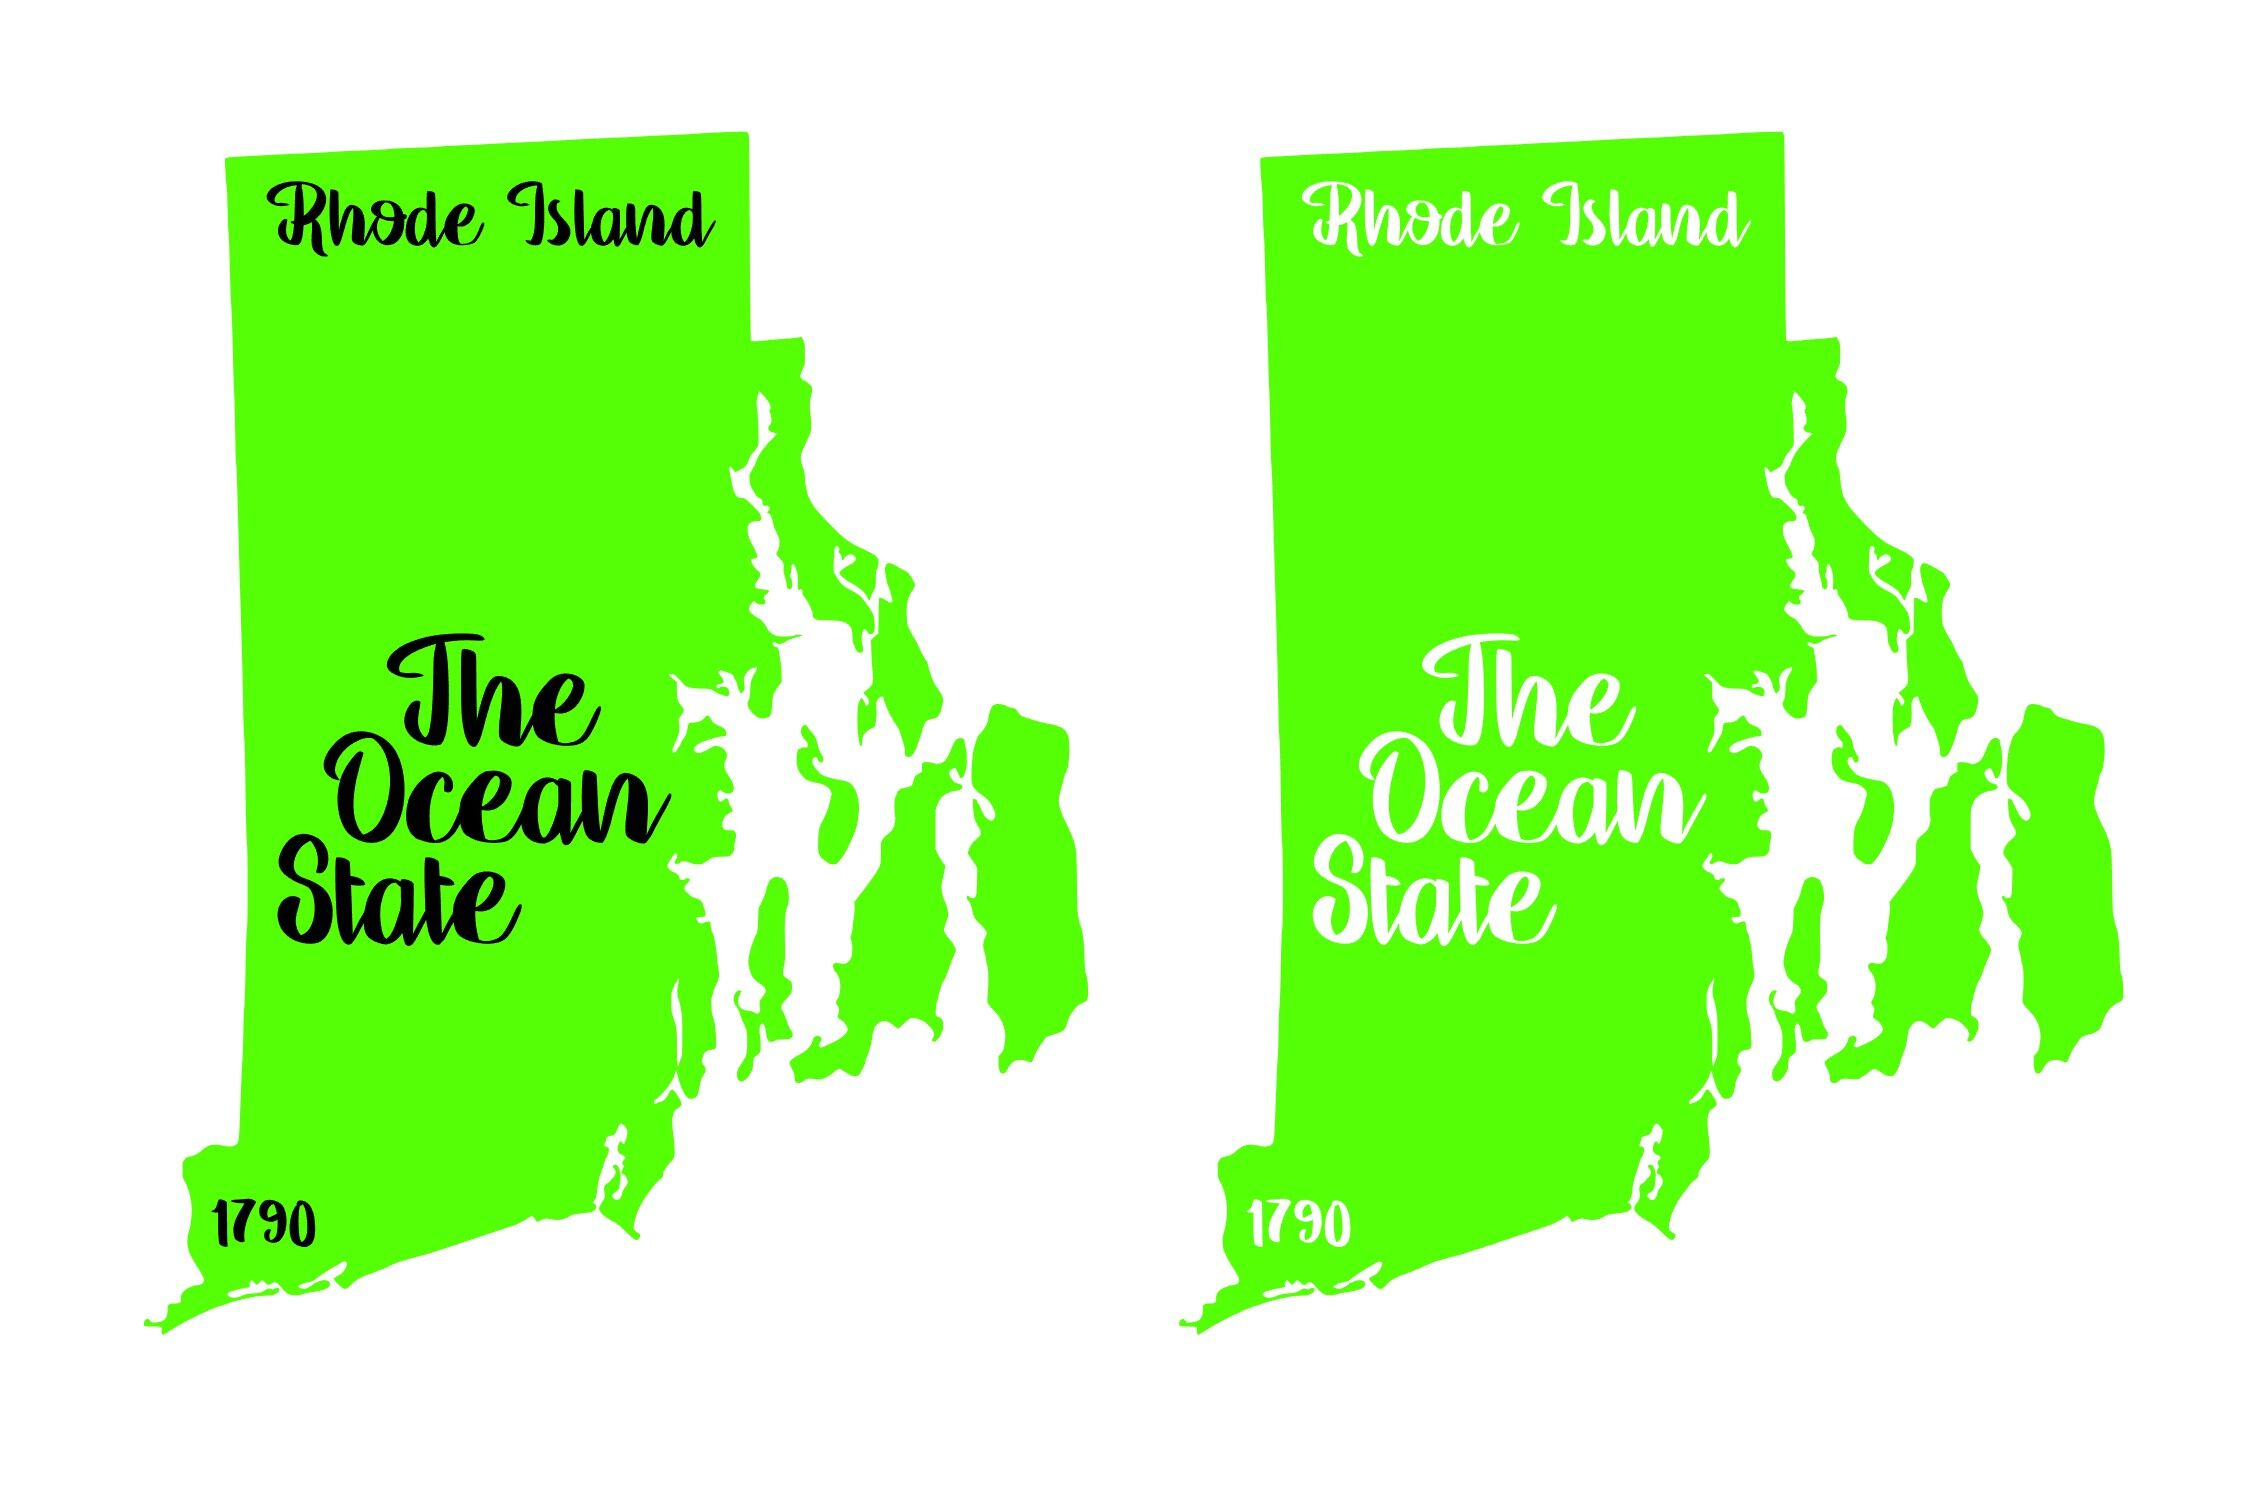 Rhode Island State Nickname Est Year 2 Files Svg Png Eps